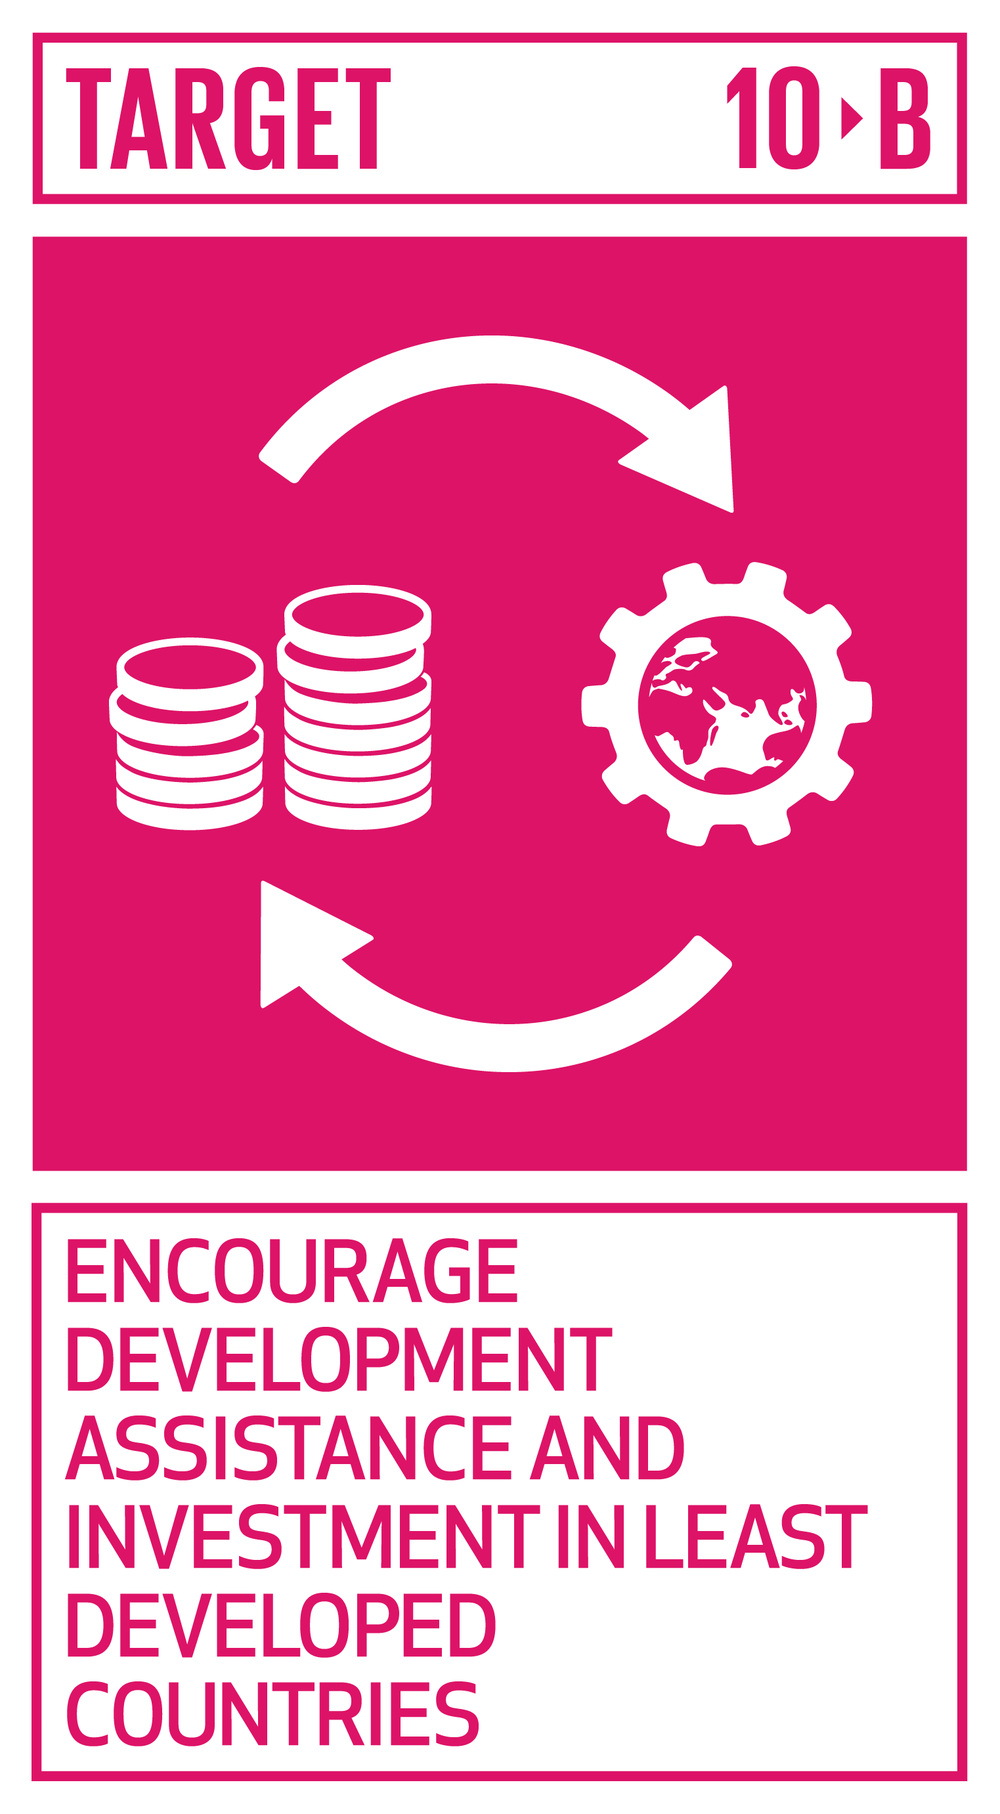 Encourage official development assistance and financial flows, including foreign direct investment, to States where the need is greatest, in particular least developed countries, African countries, small island developing States and landlocked developing countries, in accordance with their national plans and programmes.   INDICATOR    10.b.1  Total resource flows for development, by recipient and donor countries and type of flow (e.g. official development assistance, foreign direct investment and other flows)